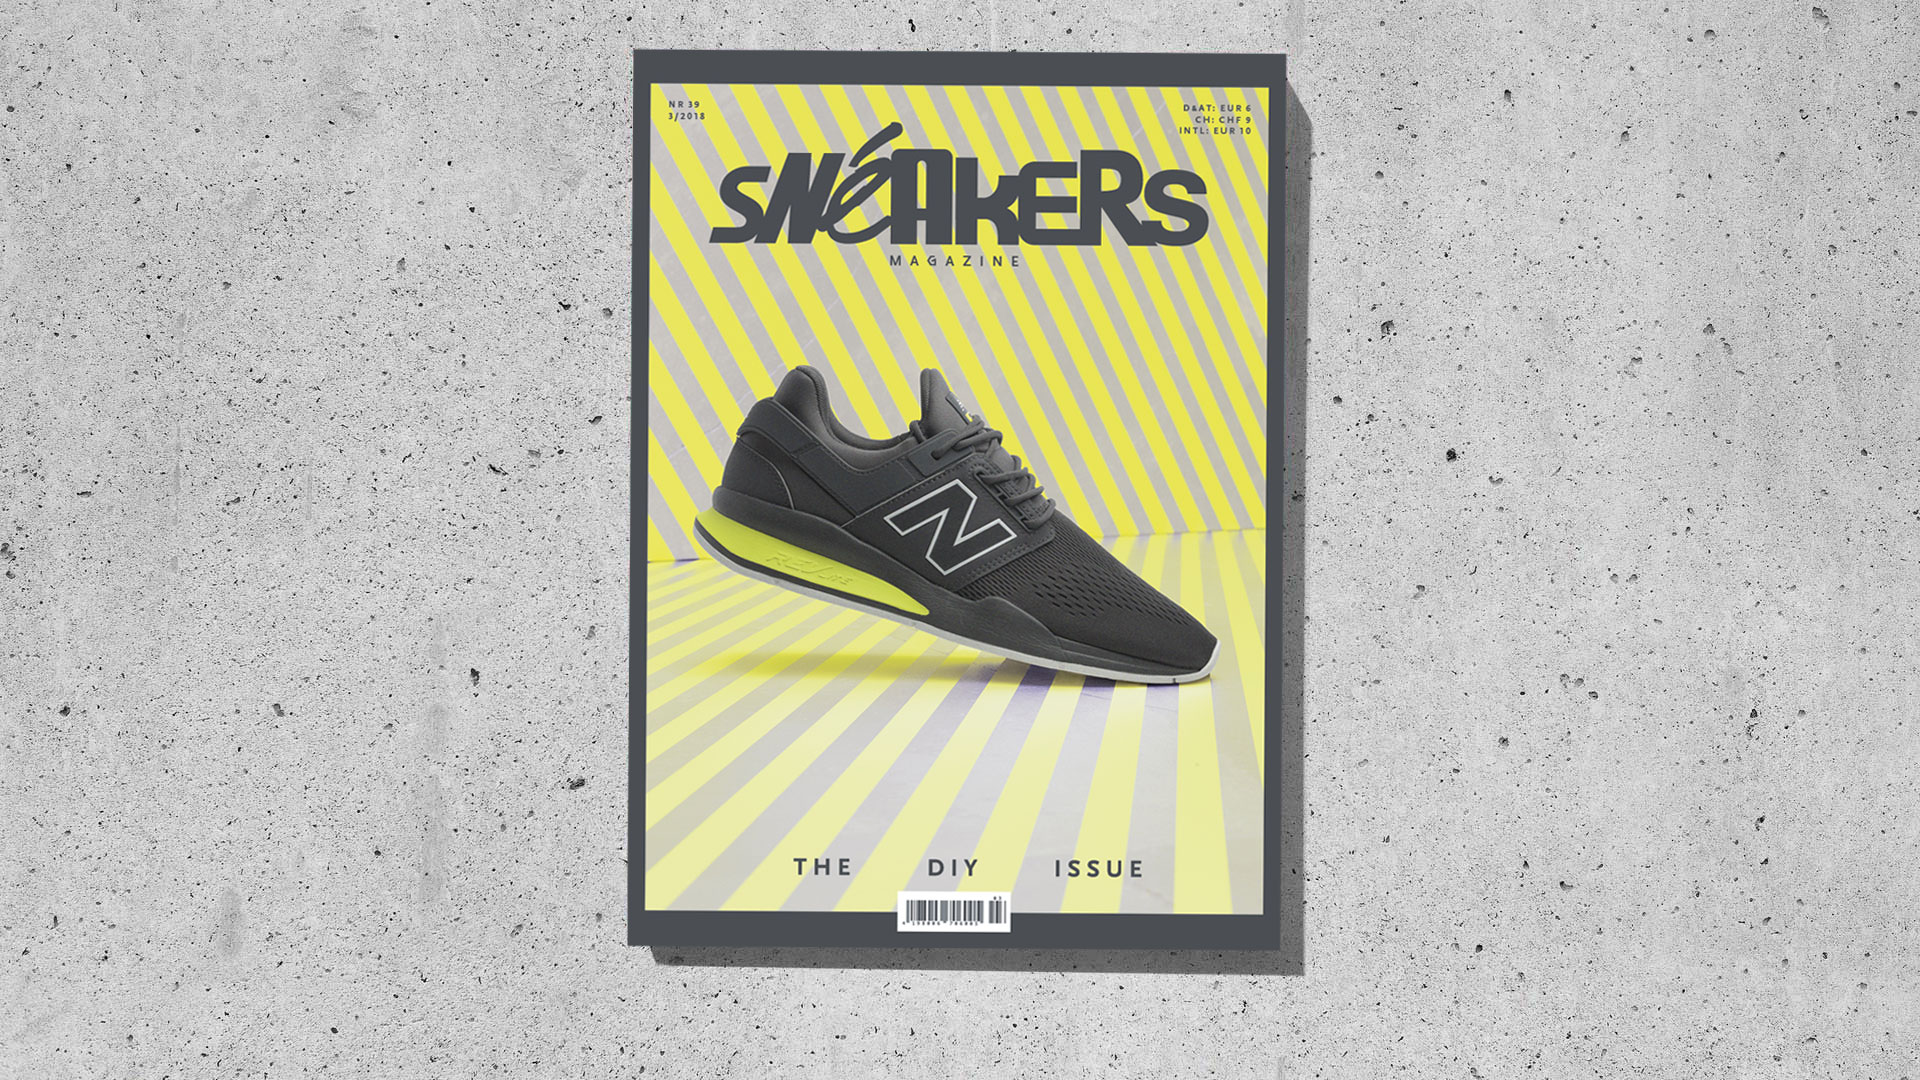 Sneakers Mag - July 2018 (Concrete)